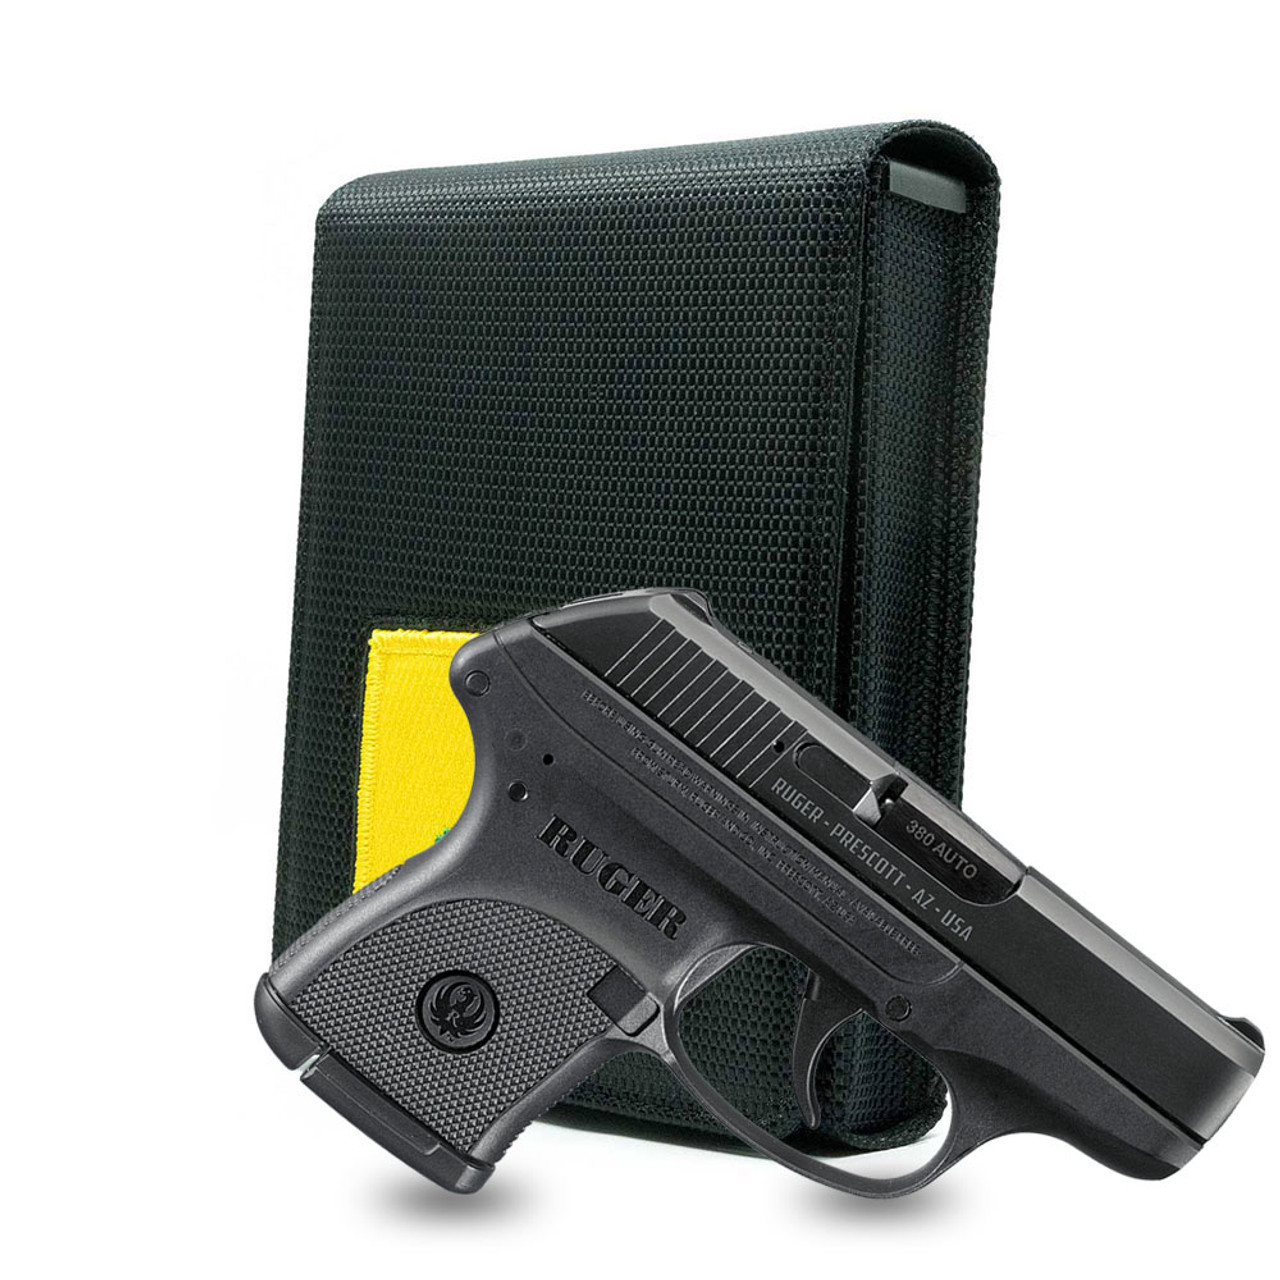 Ruger LCP Don't Tread on Me Holster